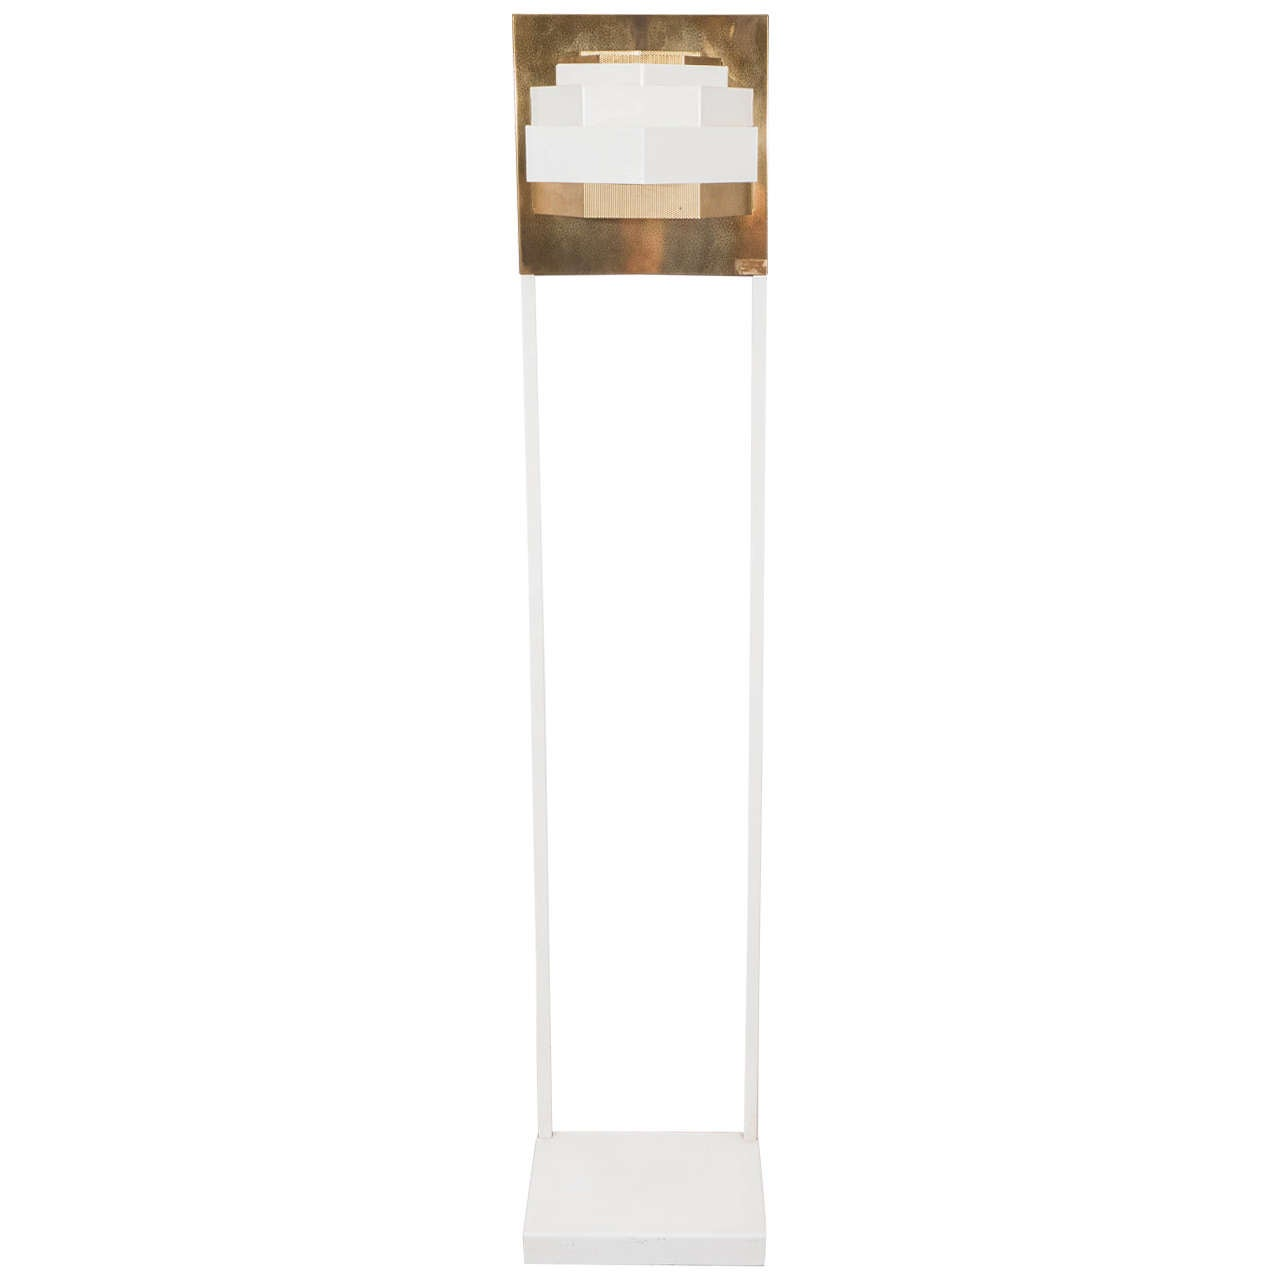 A Midcentury Sculptural Floor Lamp In White Enamel And Br For